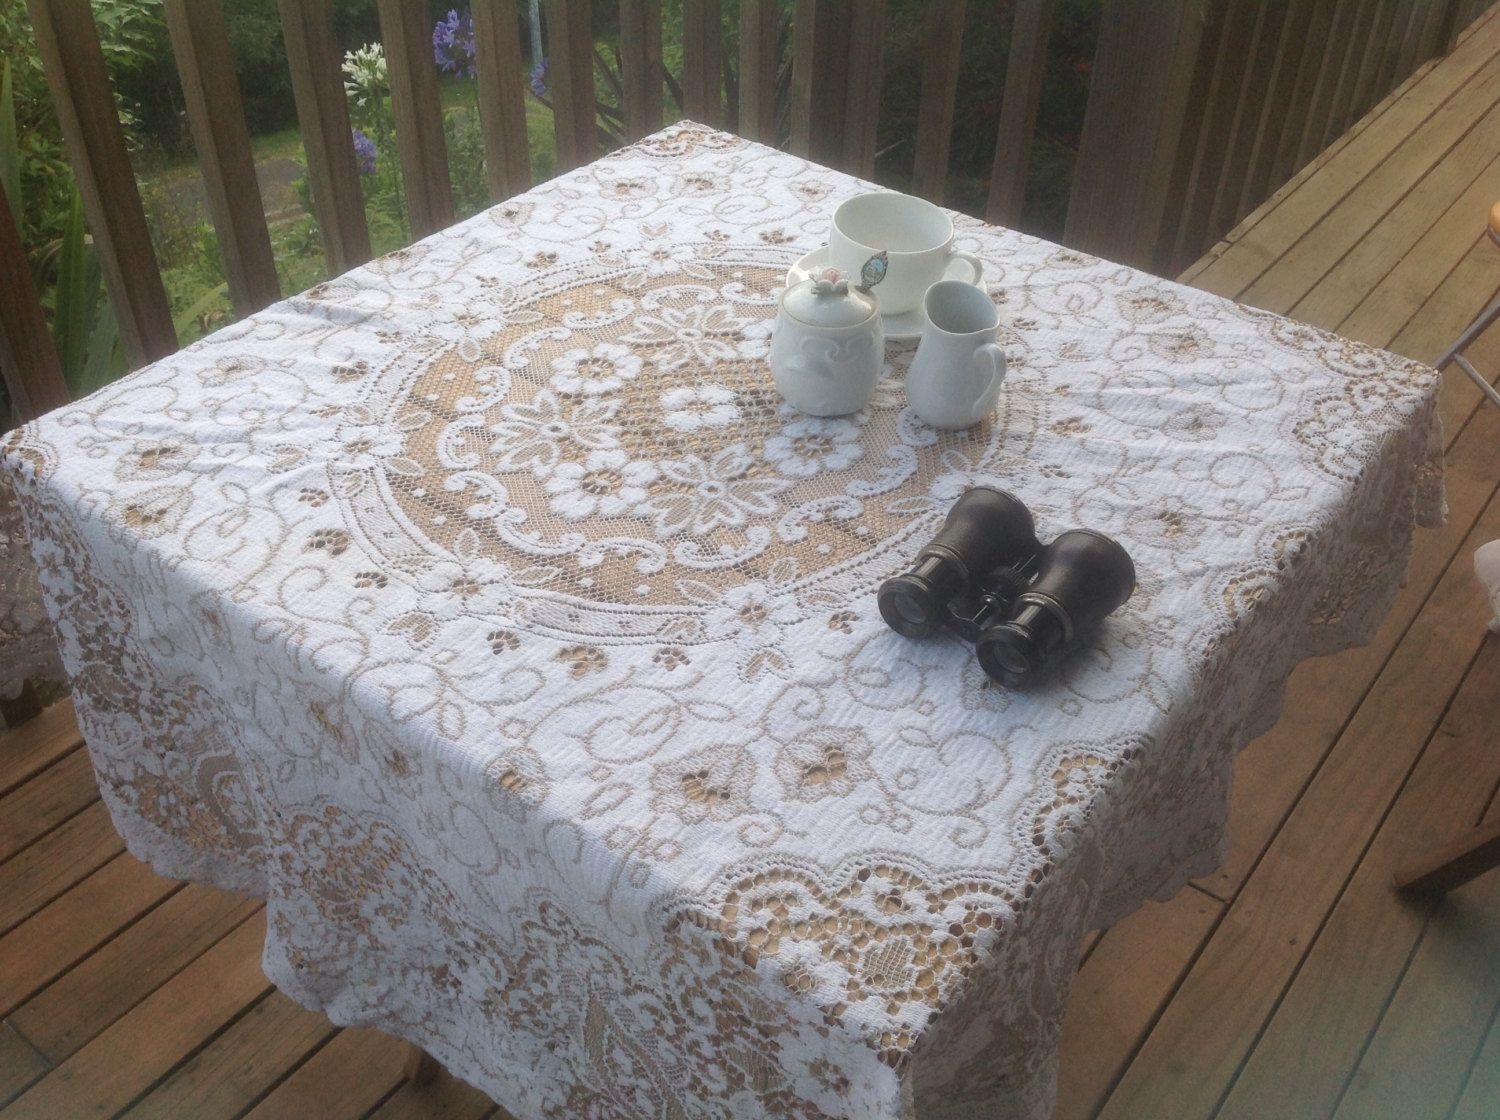 Vintage Round Shabby Chic French Lace Tablecloth . Ivory And Taupe.  Diameter 52 Inches (128 Cm)